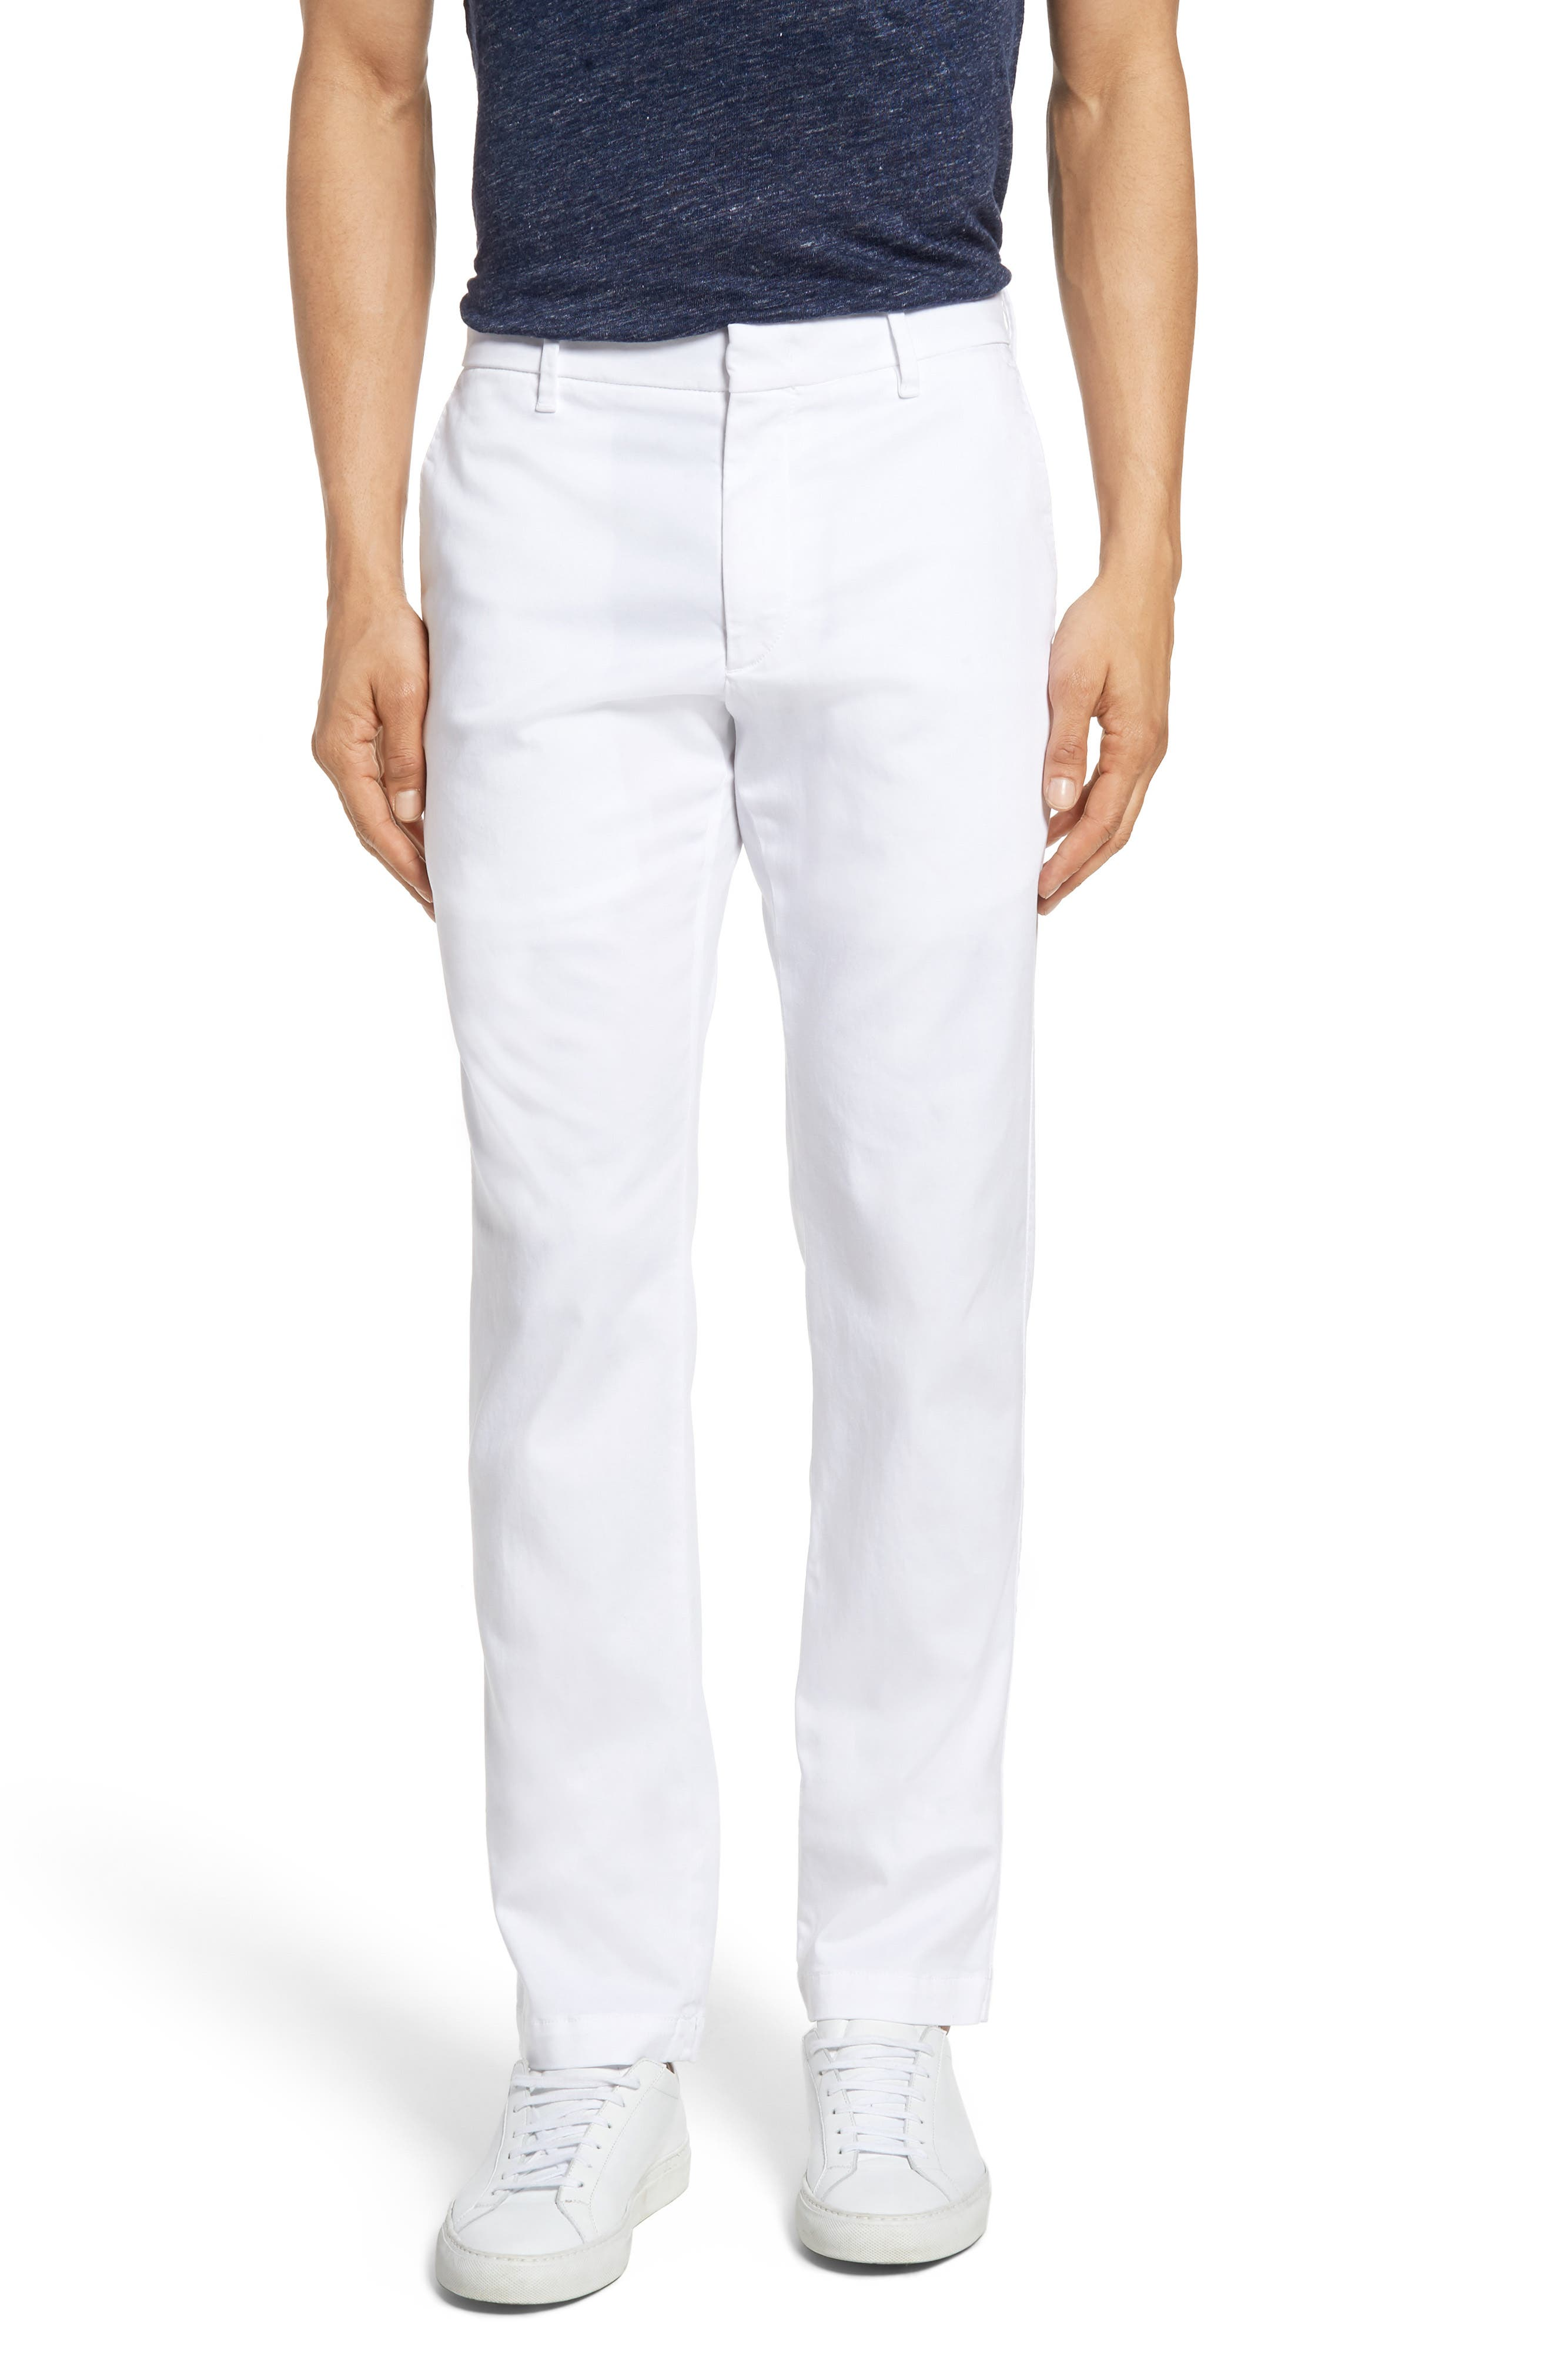 Zachary Prell Aster Straight Leg Trousers